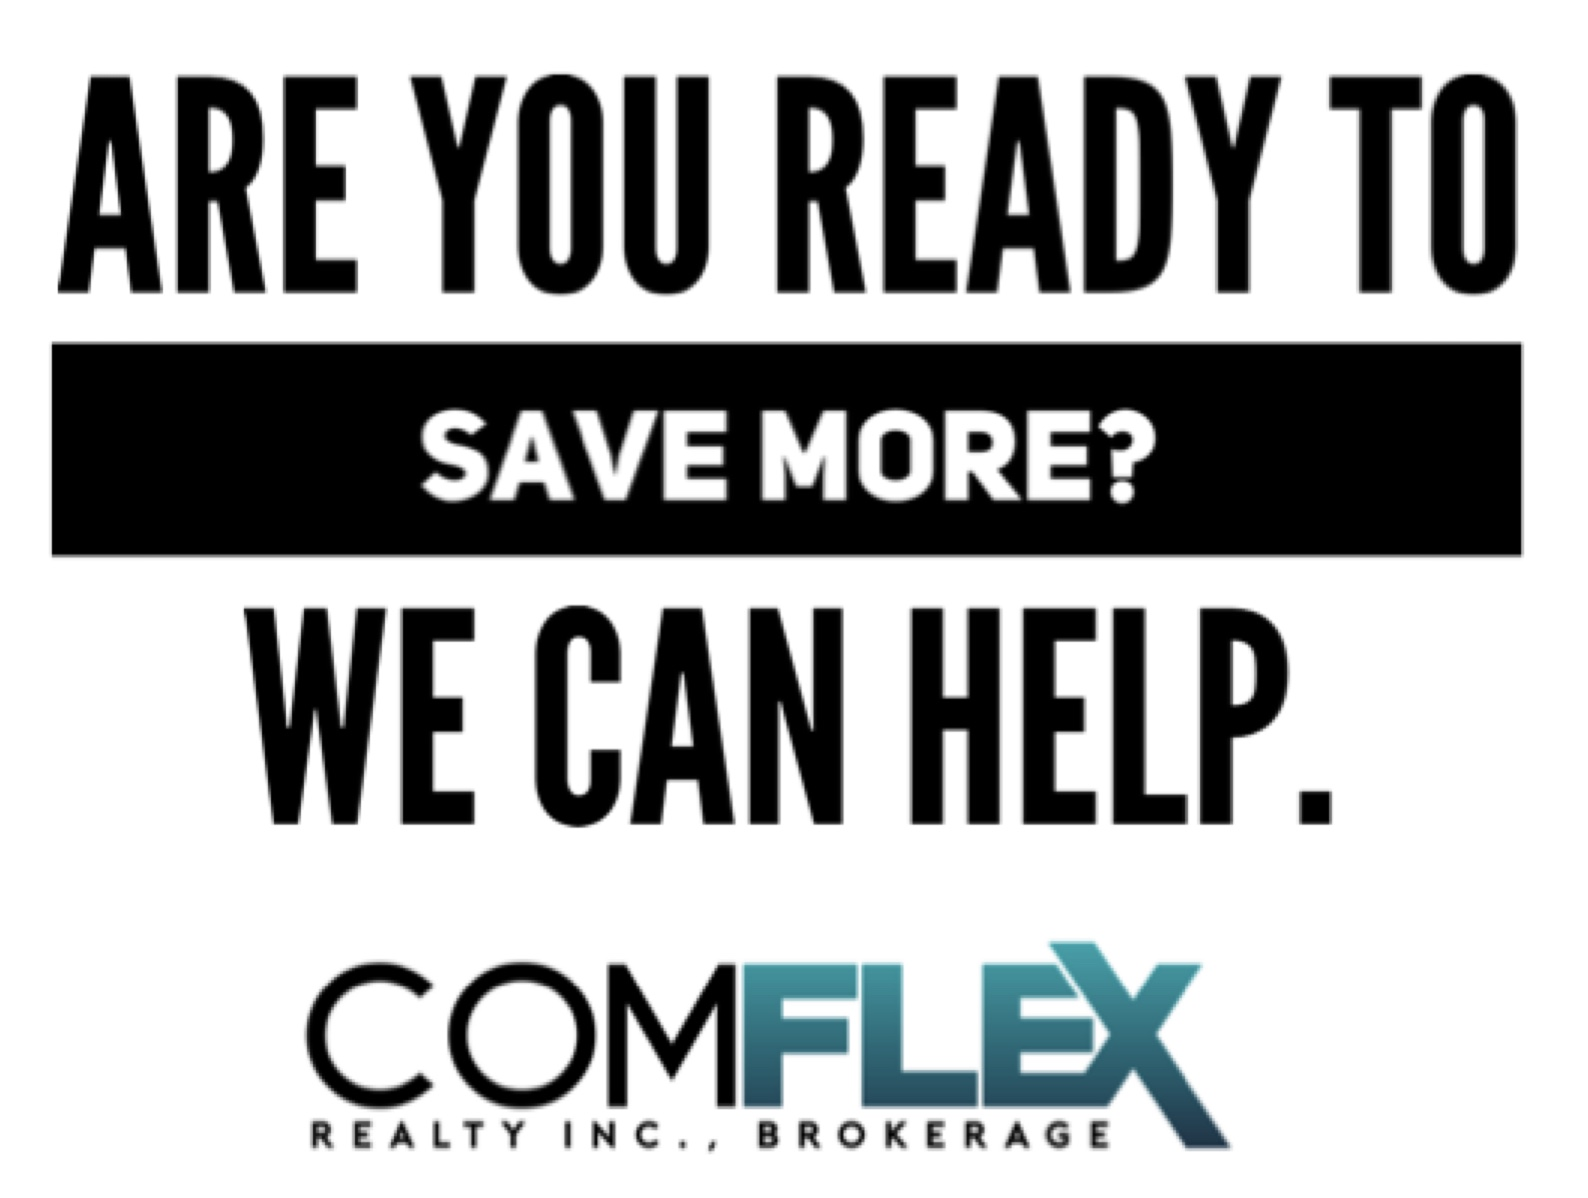 WANT TO KNOW THE REAL REASON MORE PEOPLE USE COMFLEX?